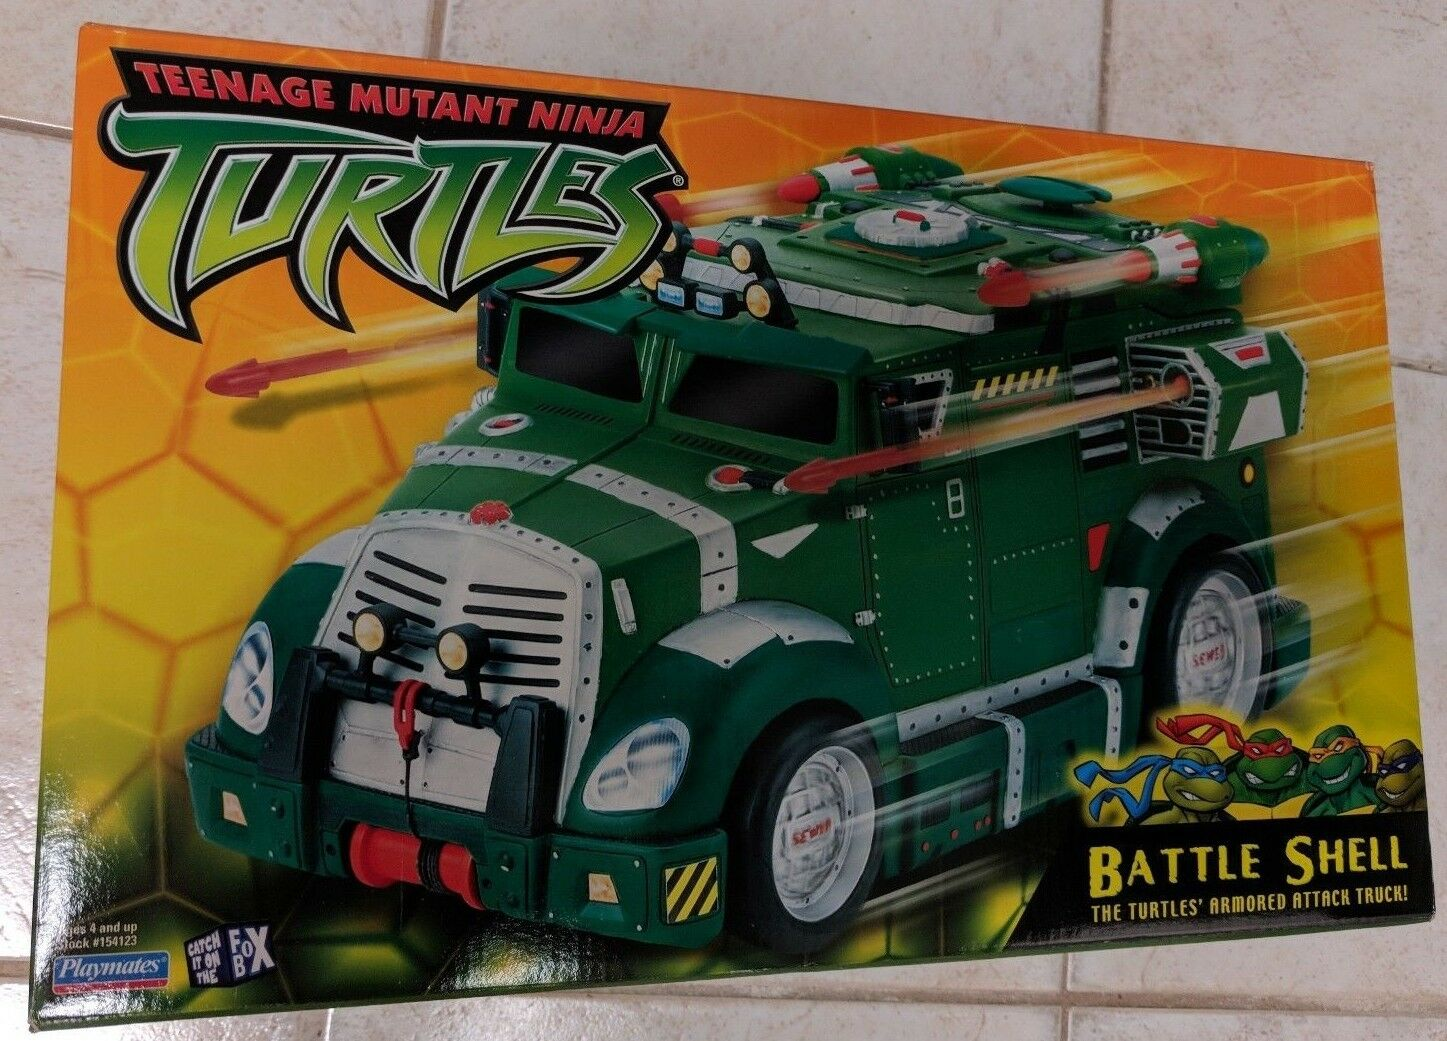 Teenage Mutant Ninja Turtles (TMNT) Battle Shell 2003 Unopened